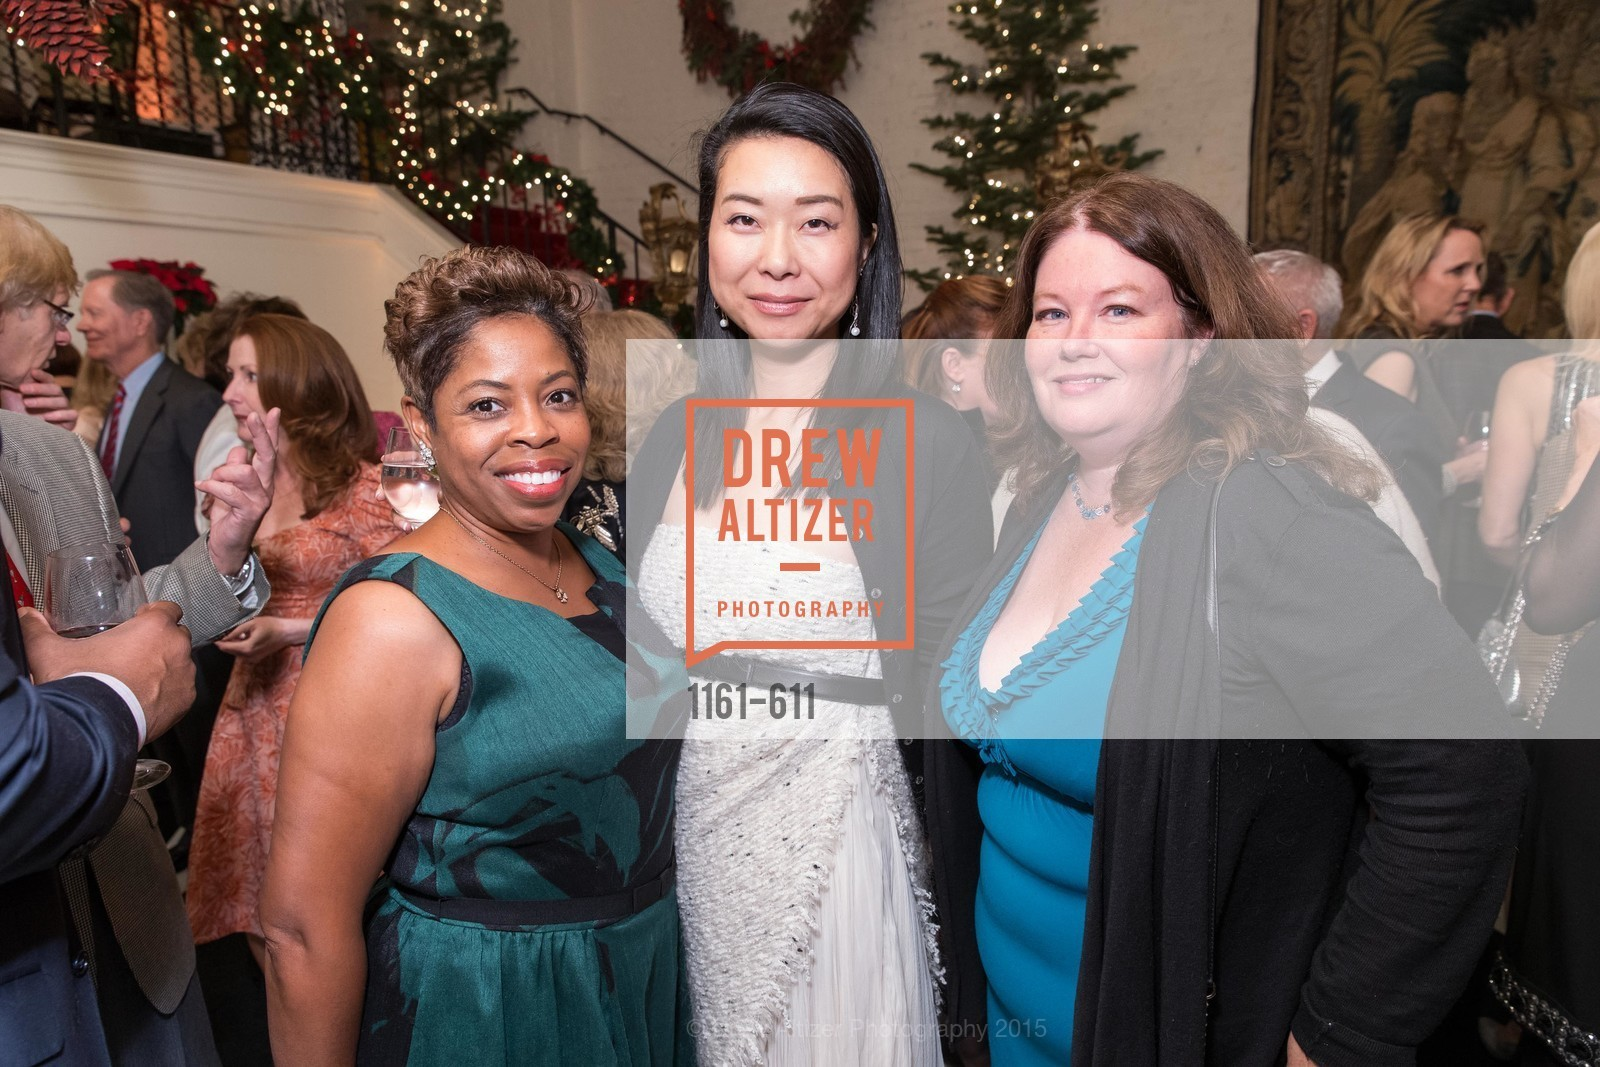 Stephanie Russell, Eri Takahashi, Catherine Bergstrom, San Francisco Ballet Auxiliary's Gala Launch party hosted by La Perla., VILLA TAVERA. 27 HOTALING PLACE, December 1st, 2015,Drew Altizer, Drew Altizer Photography, full-service agency, private events, San Francisco photographer, photographer california